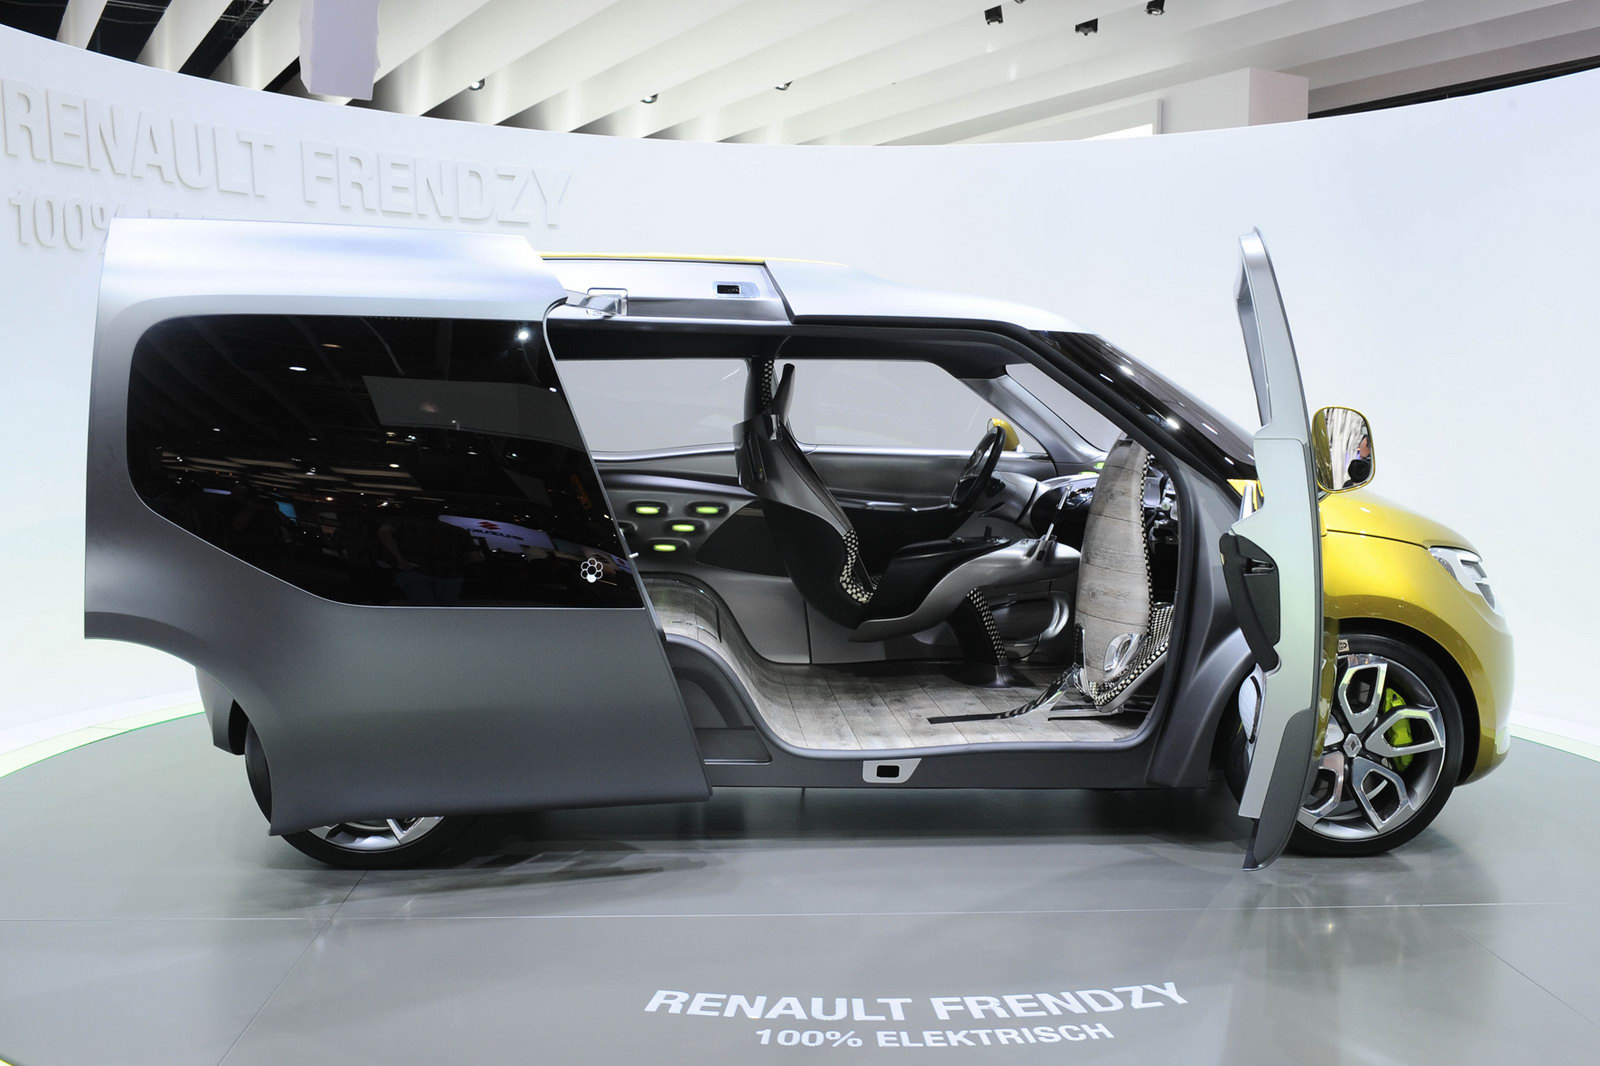 2017 Renault Frendzy Concept photo - 2